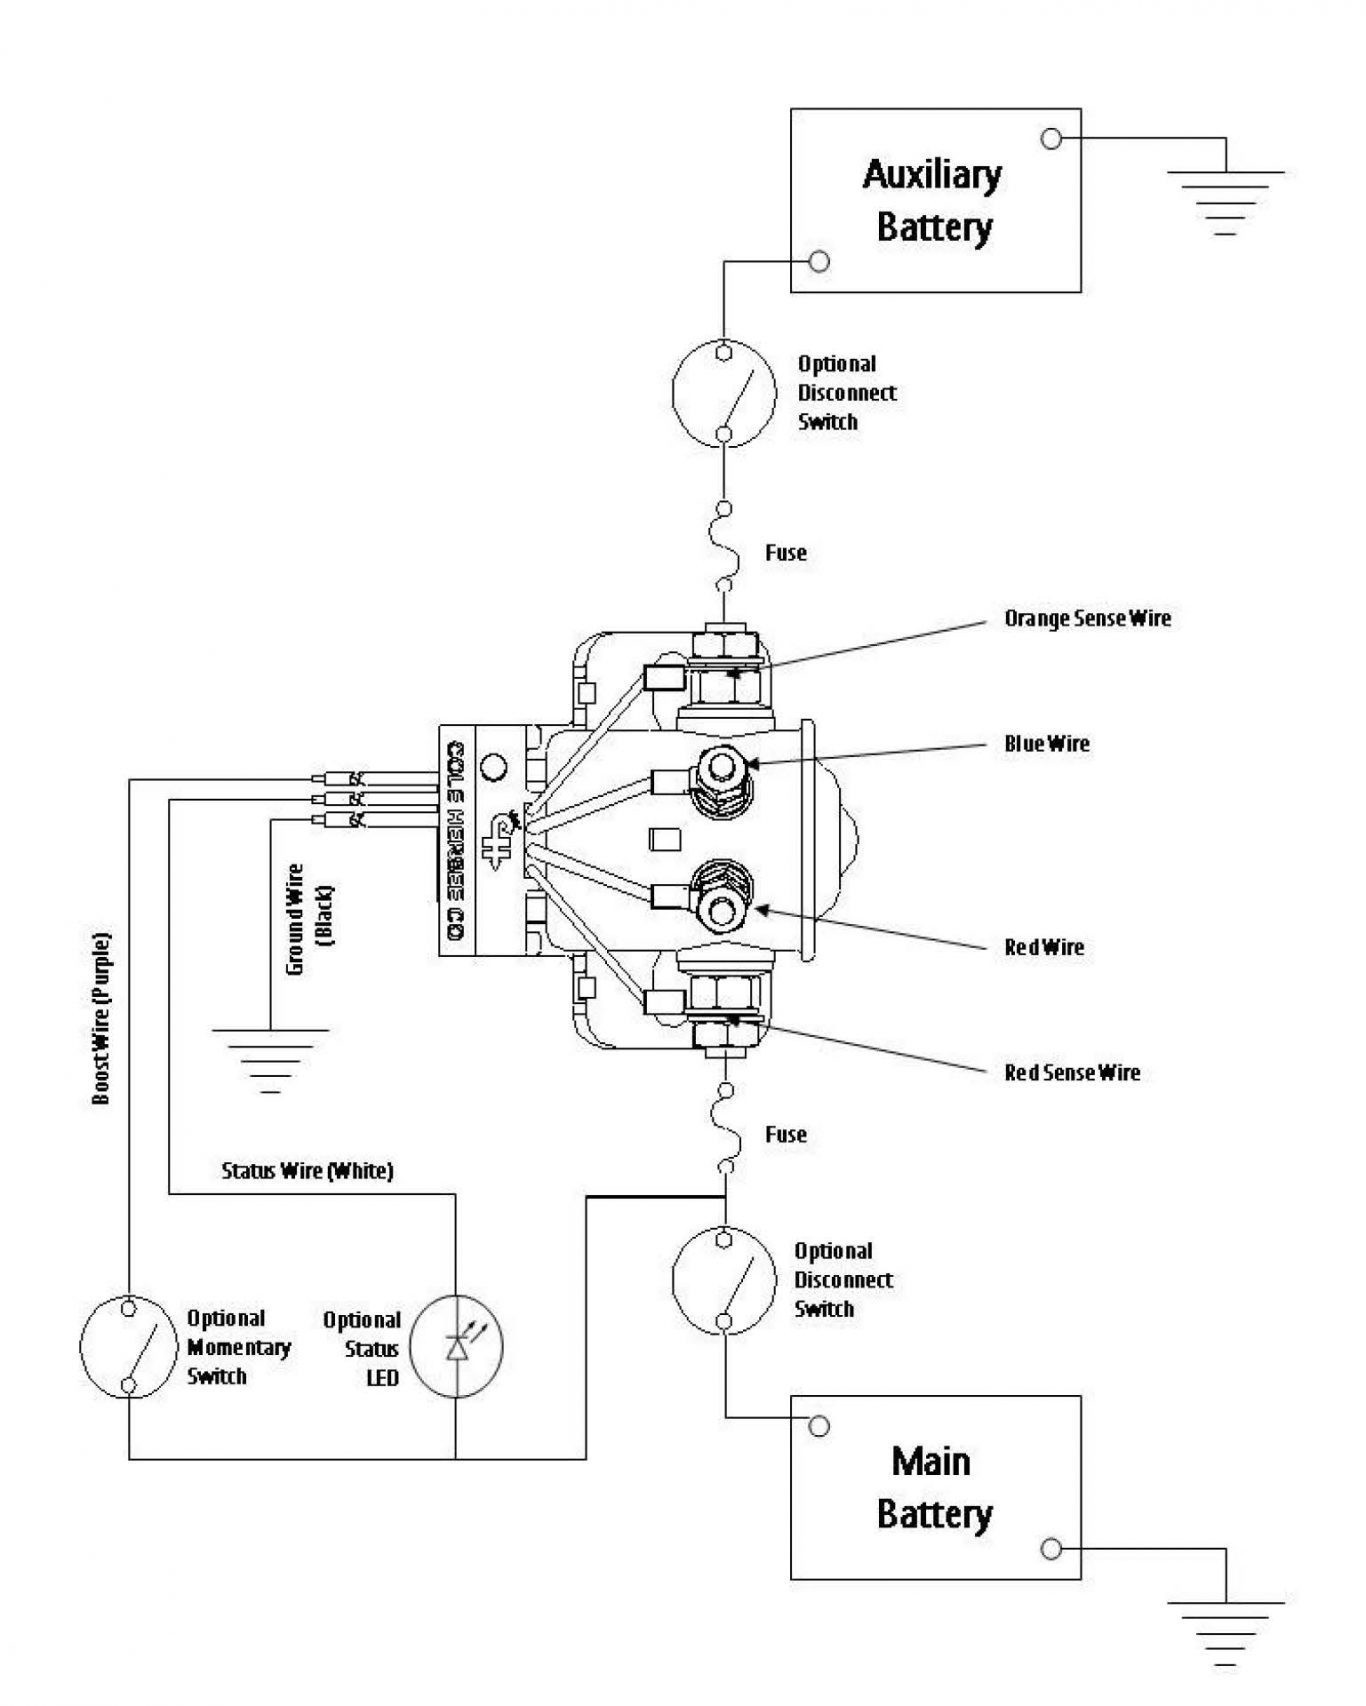 Warn 62135 Wiring Diagram from mainetreasurechest.com